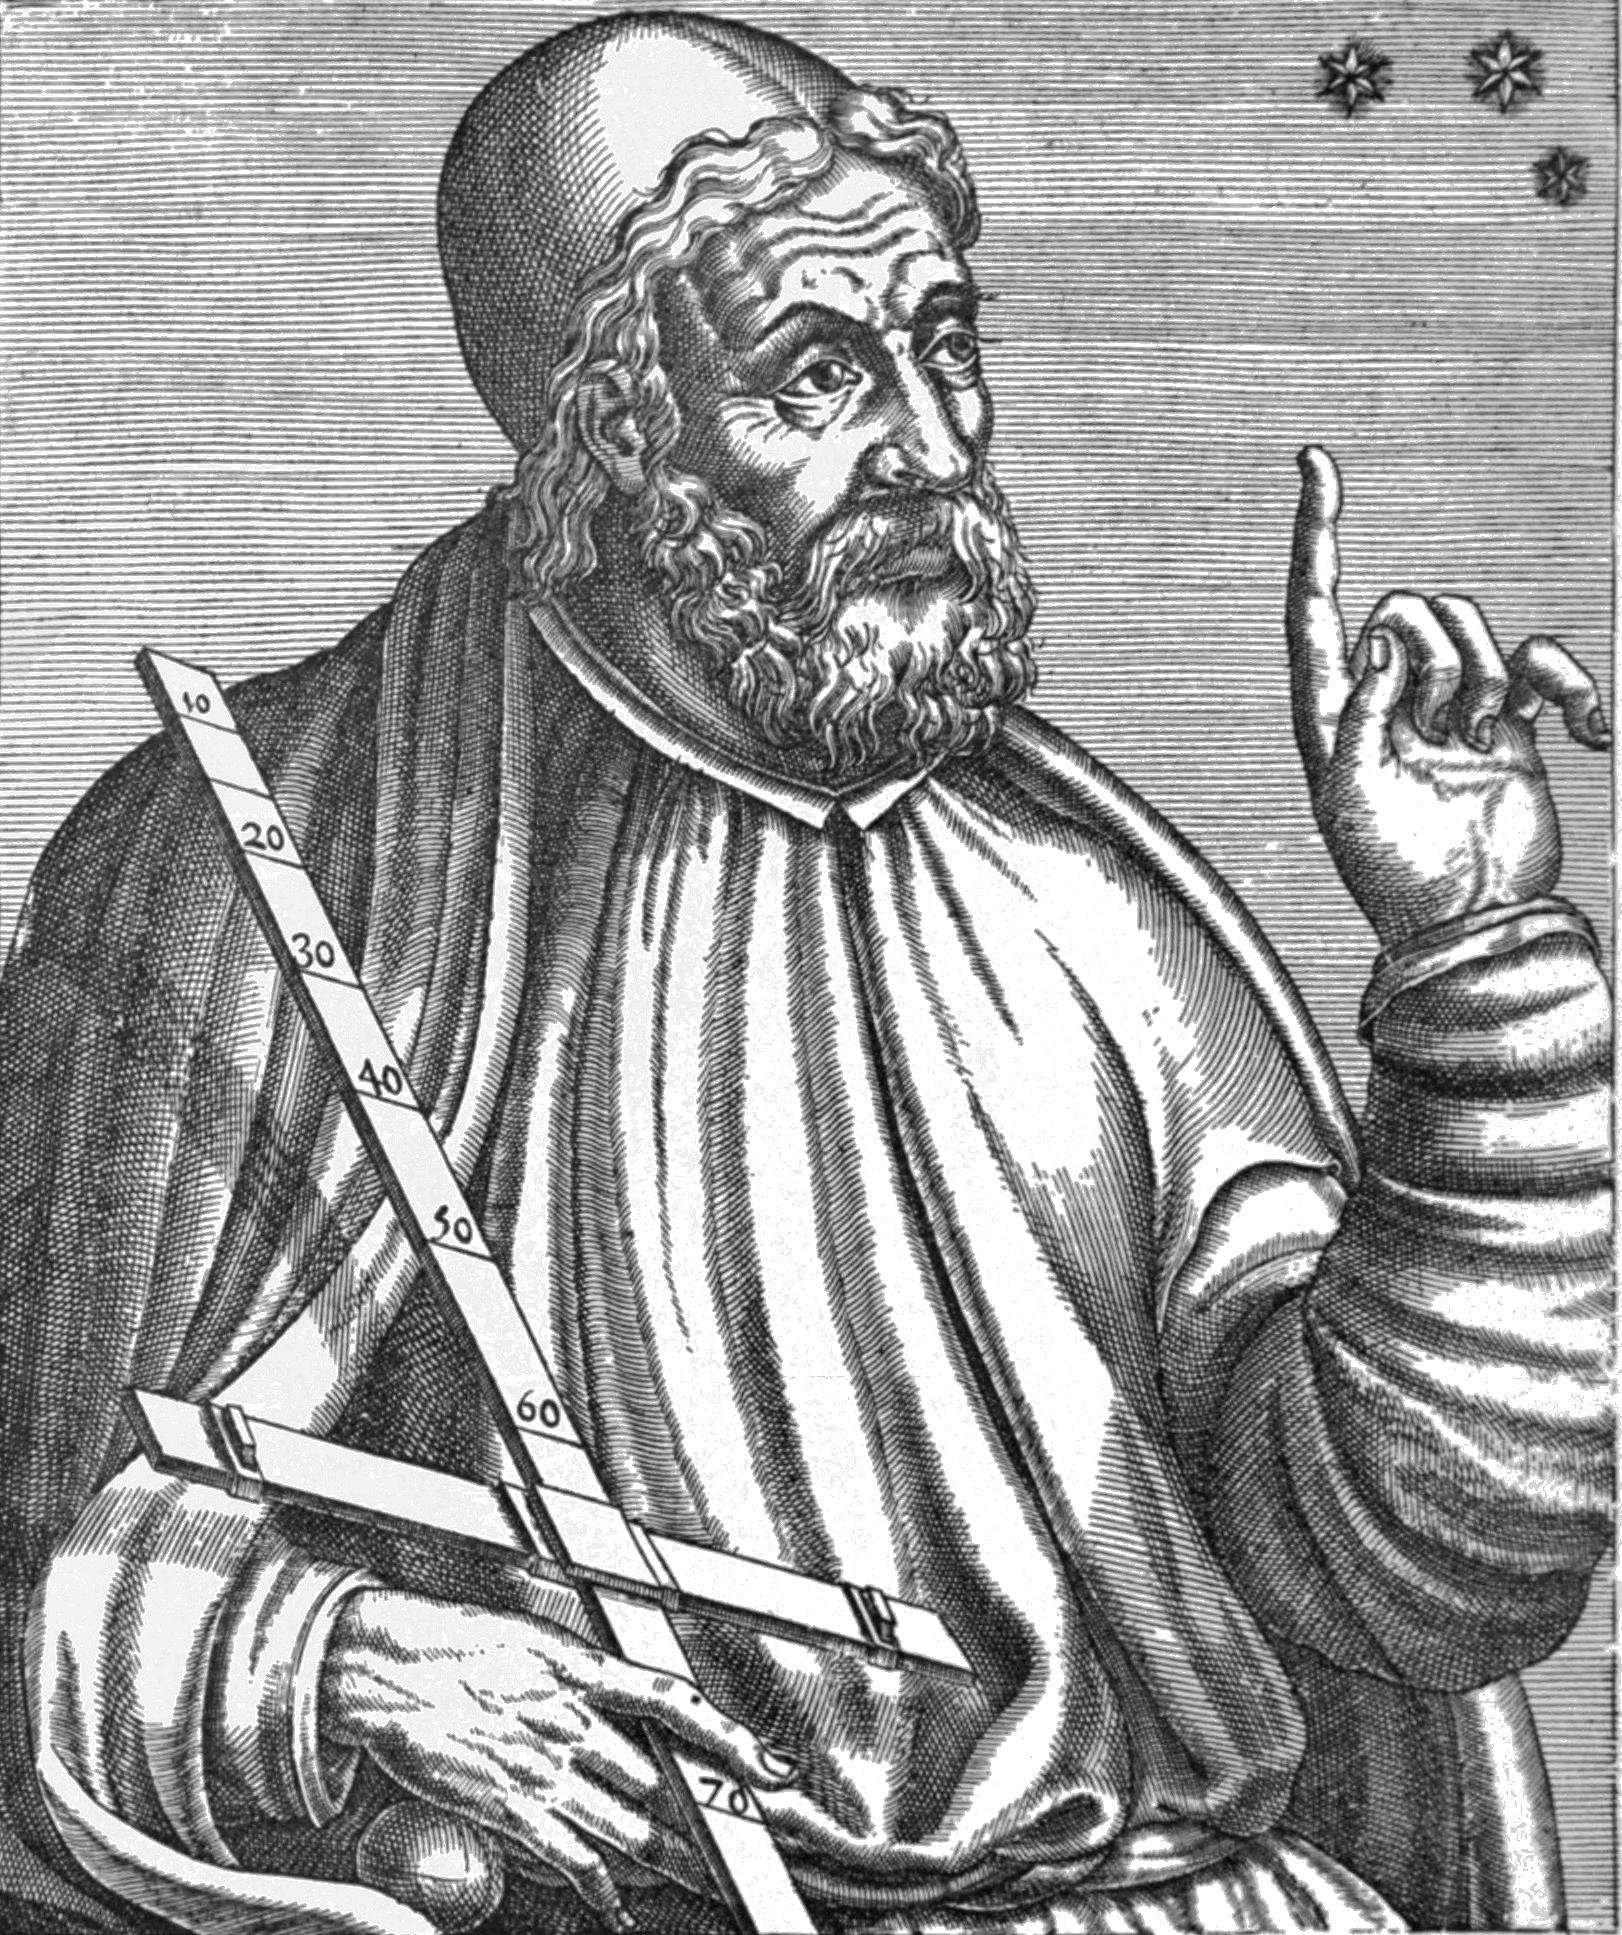 hipparchus menelaus ptolemy and greek trigonometry essay The mathematics of the heavens and the earth is and he examines the revolutionary discoveries of hipparchus, the greek astronomer trigonometry in ptolemy's.